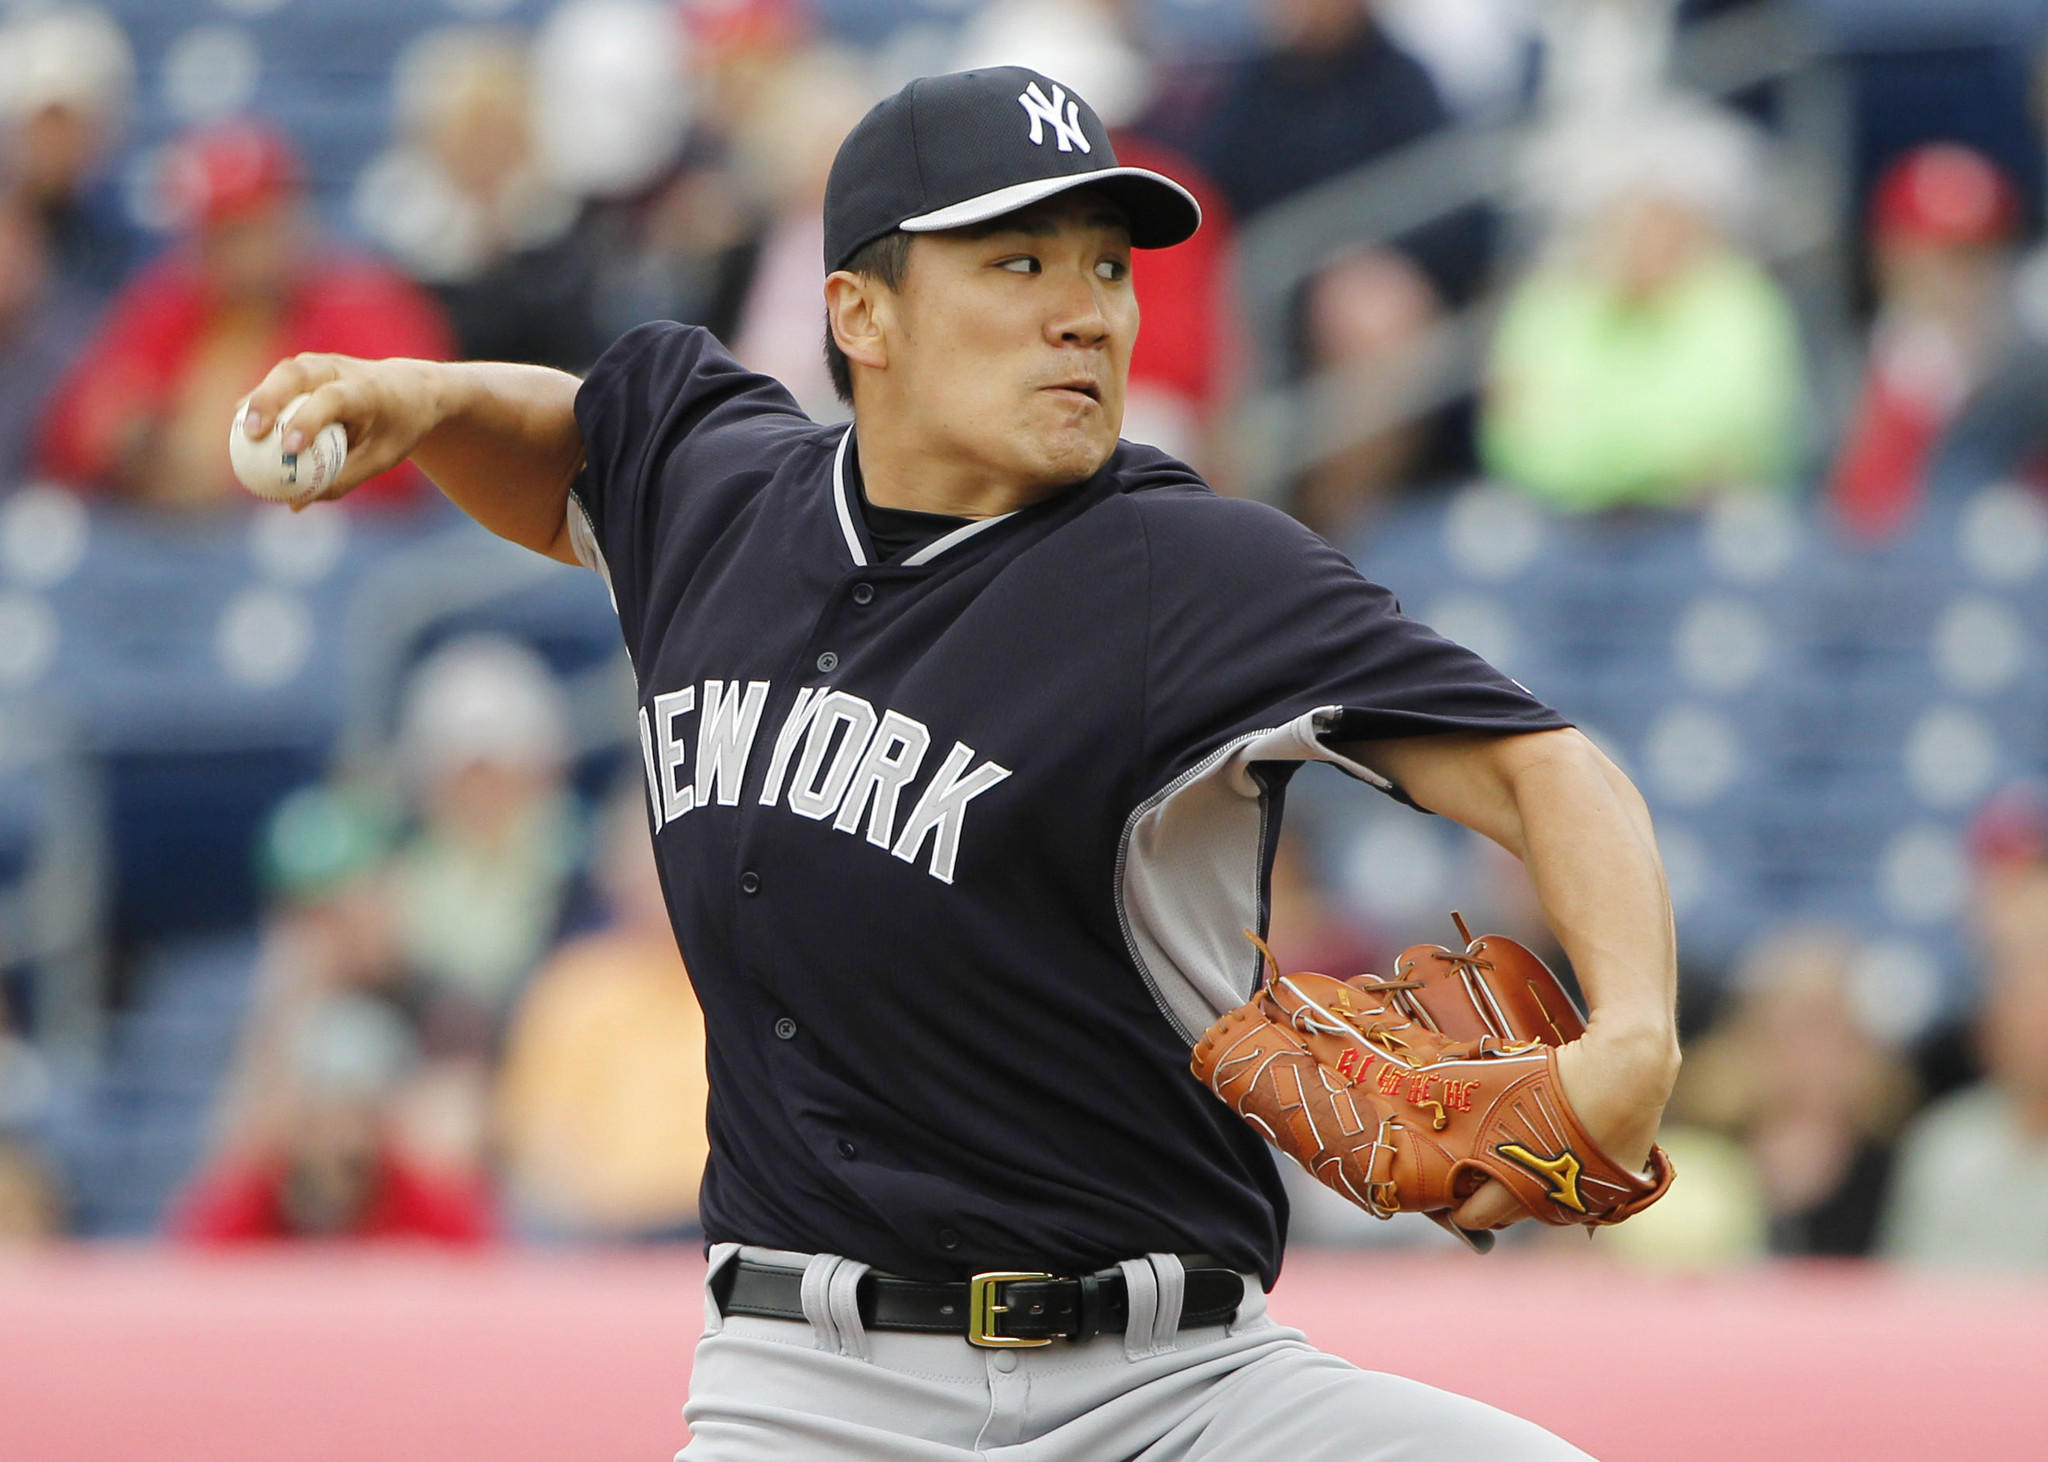 New York Yankees starter Masahiro Tanaka throws a pitch during the first inning against the Philadelphia Phillies.